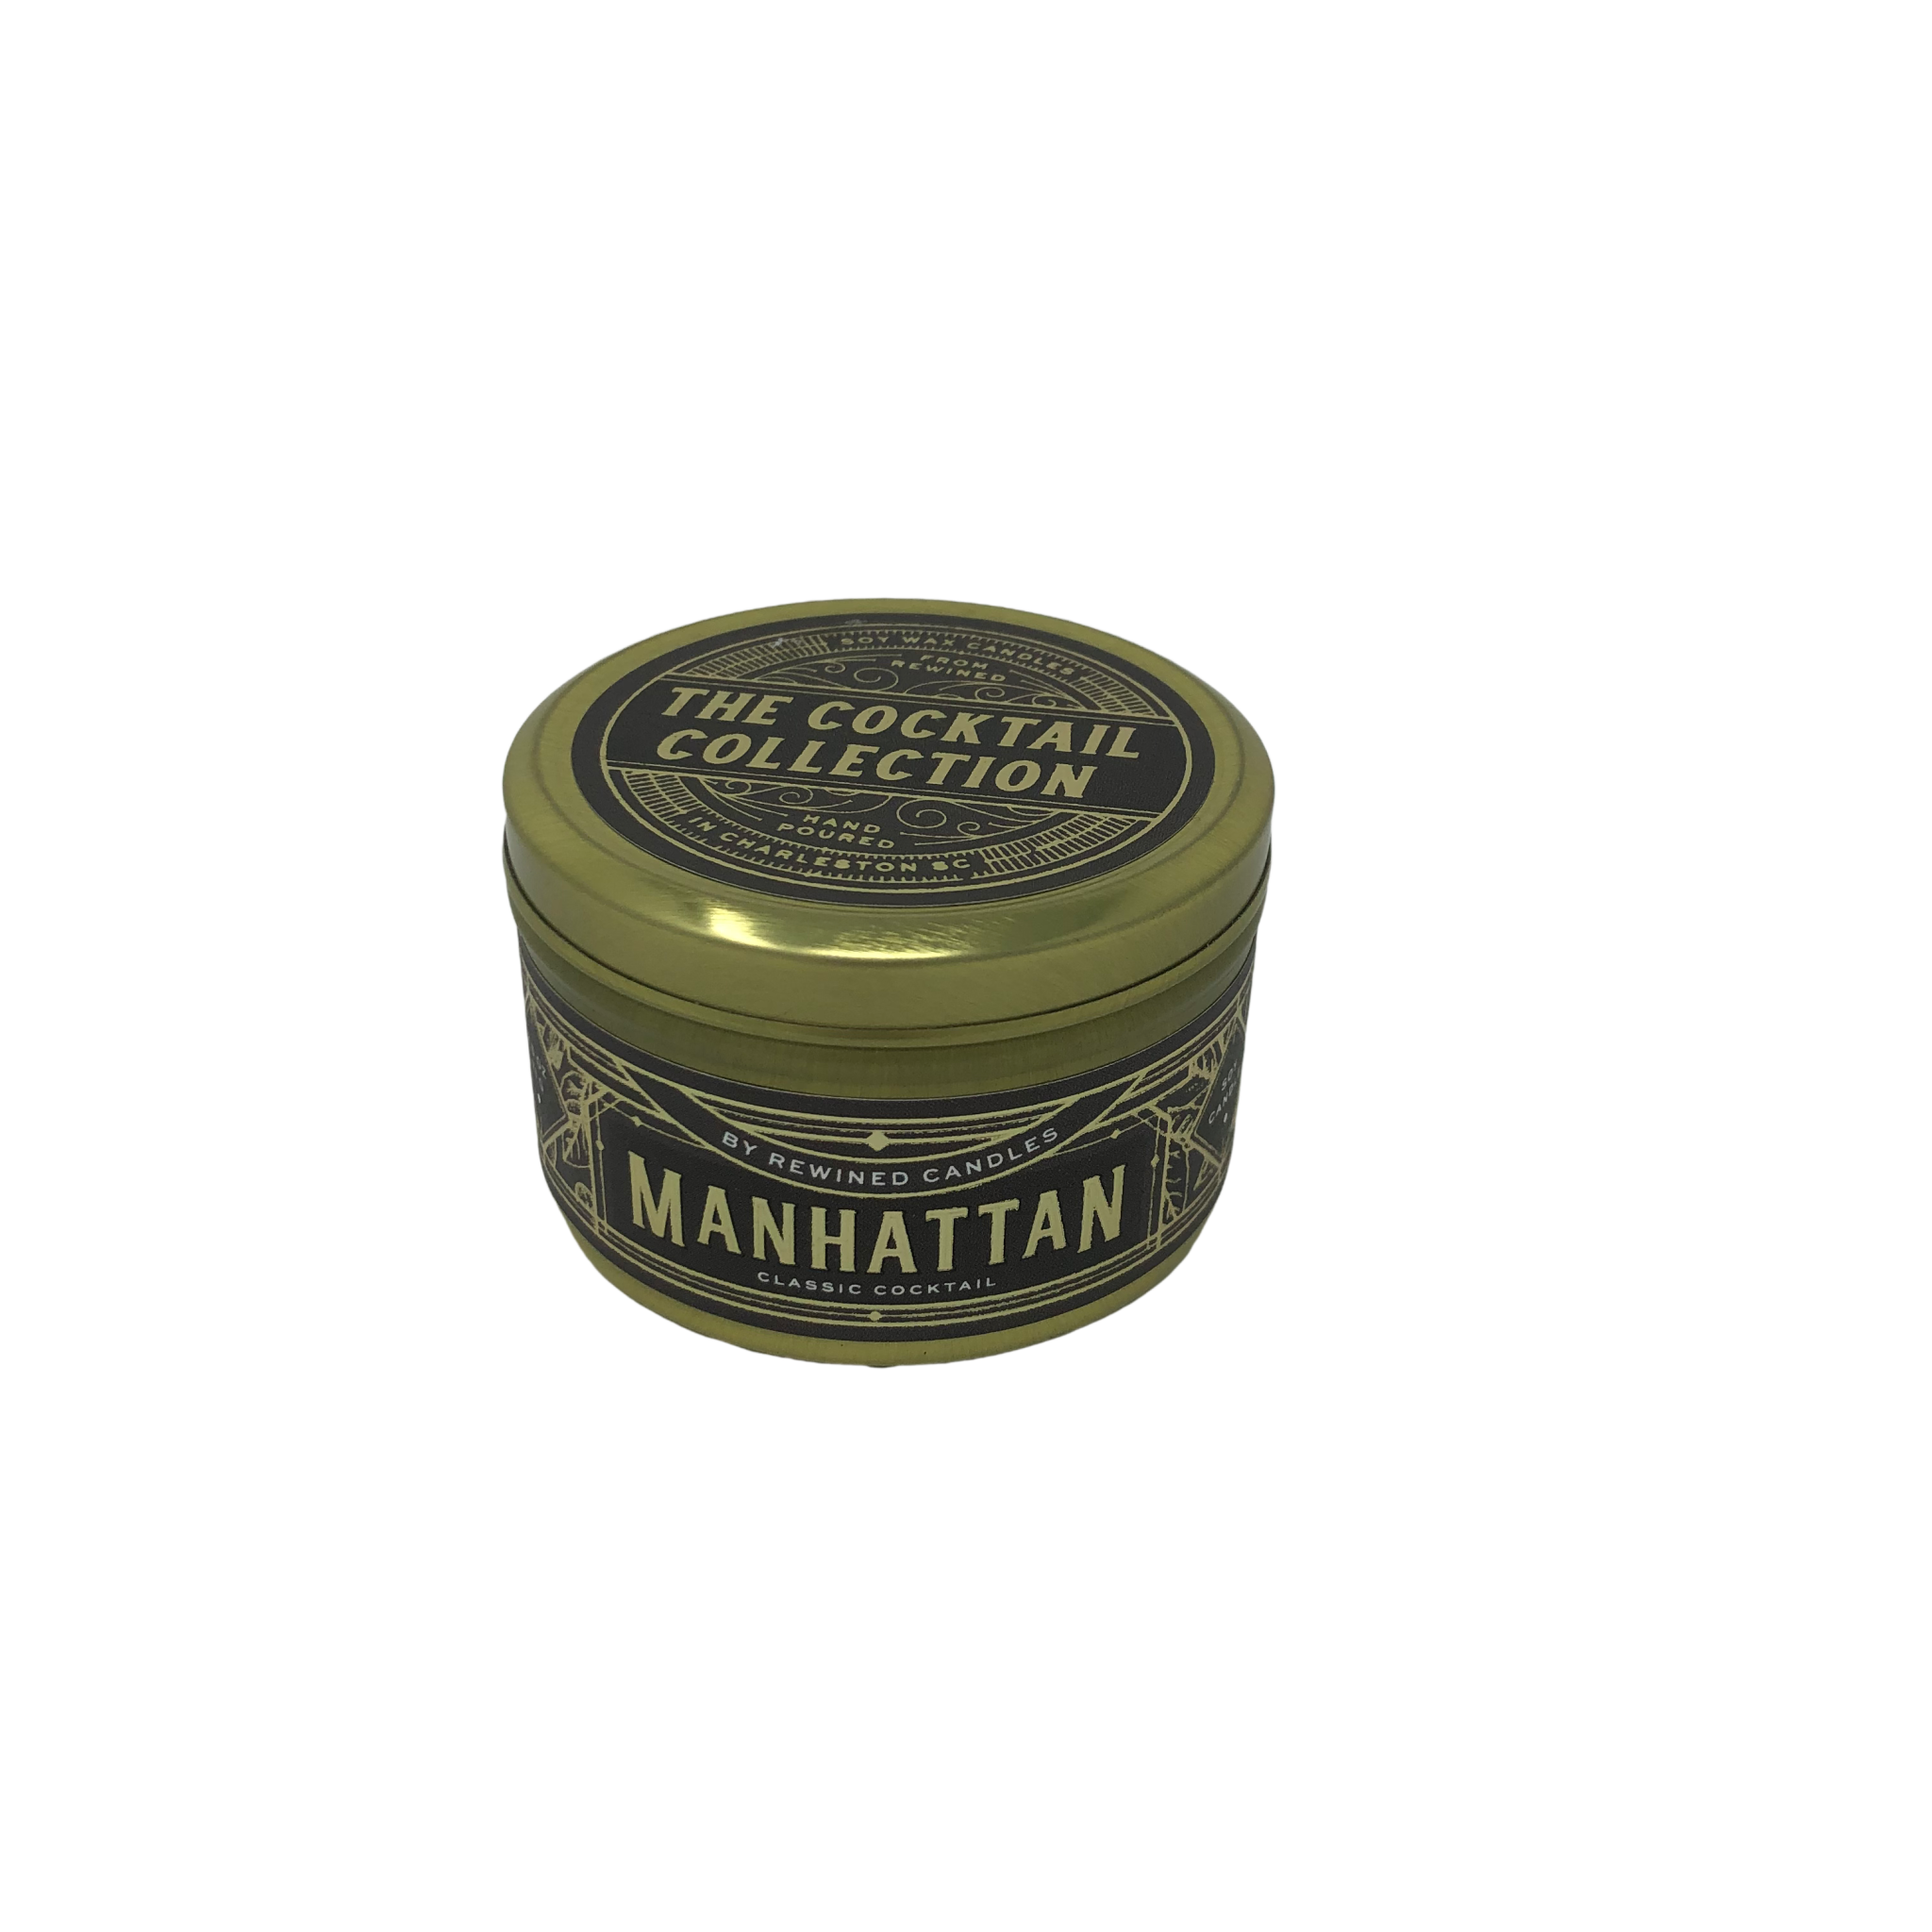 Rewined Manhattan Travel Tin Candle